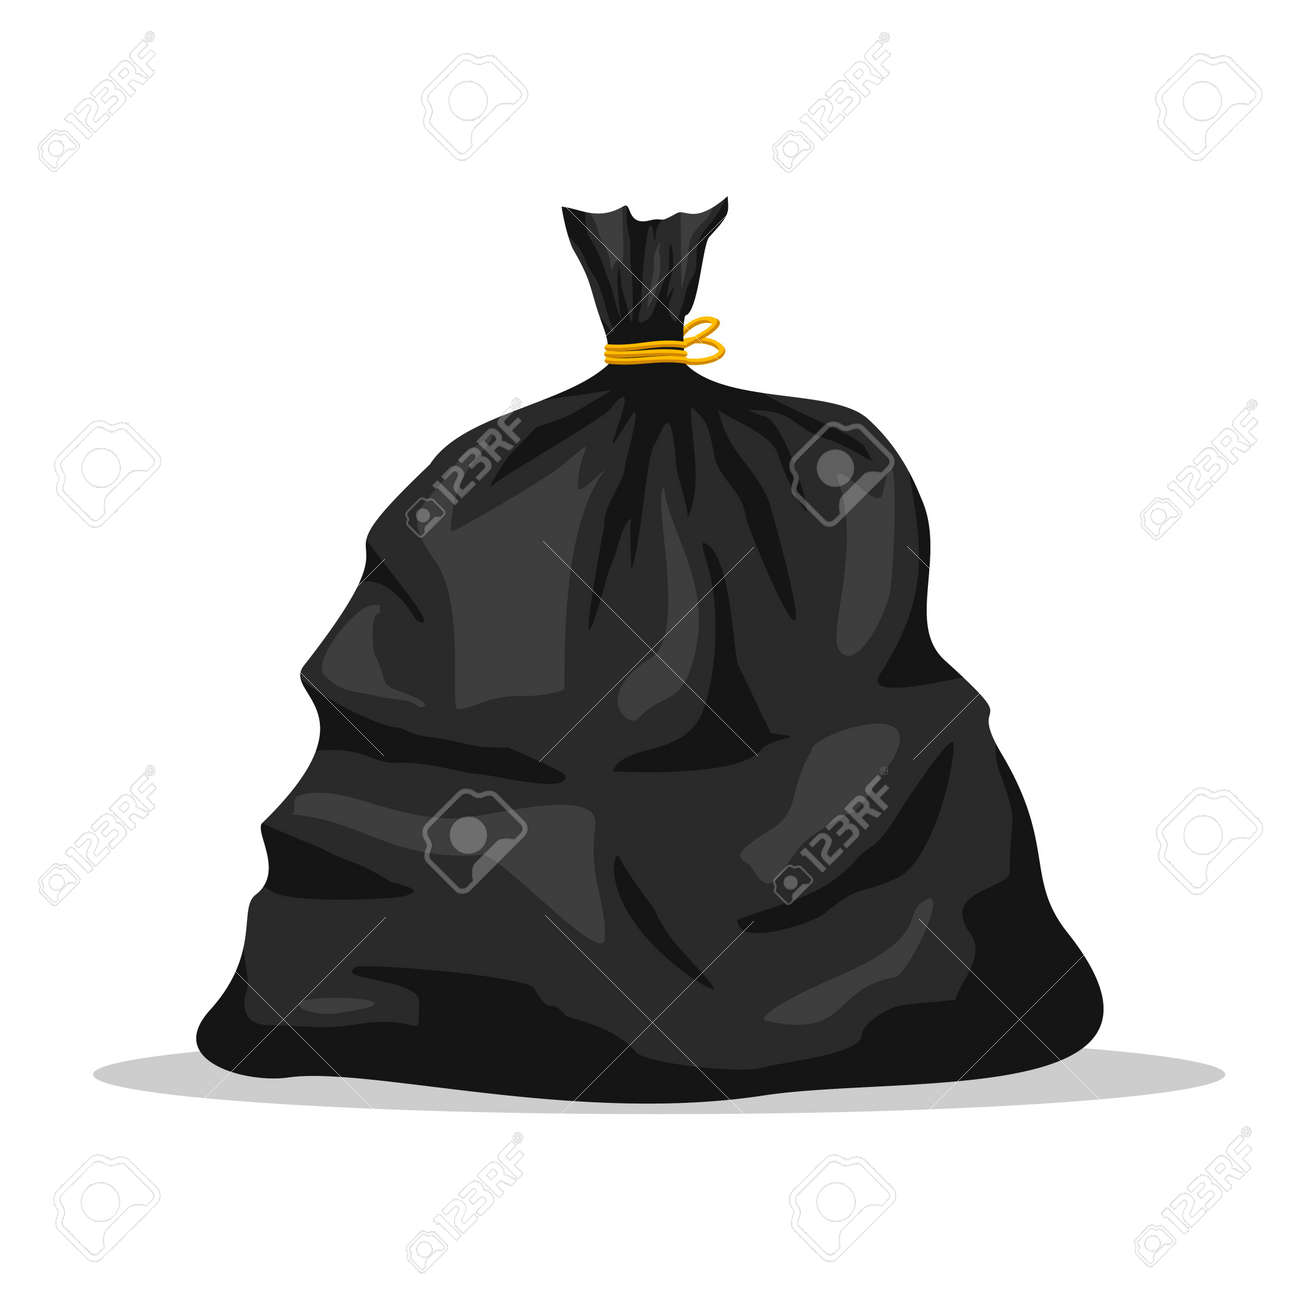 Plastic garbage bag icon isolated on white background. Black container for trash isolated on white. Garbage recycling and utilization equipment. Waste management. Vector illustration - 162713209